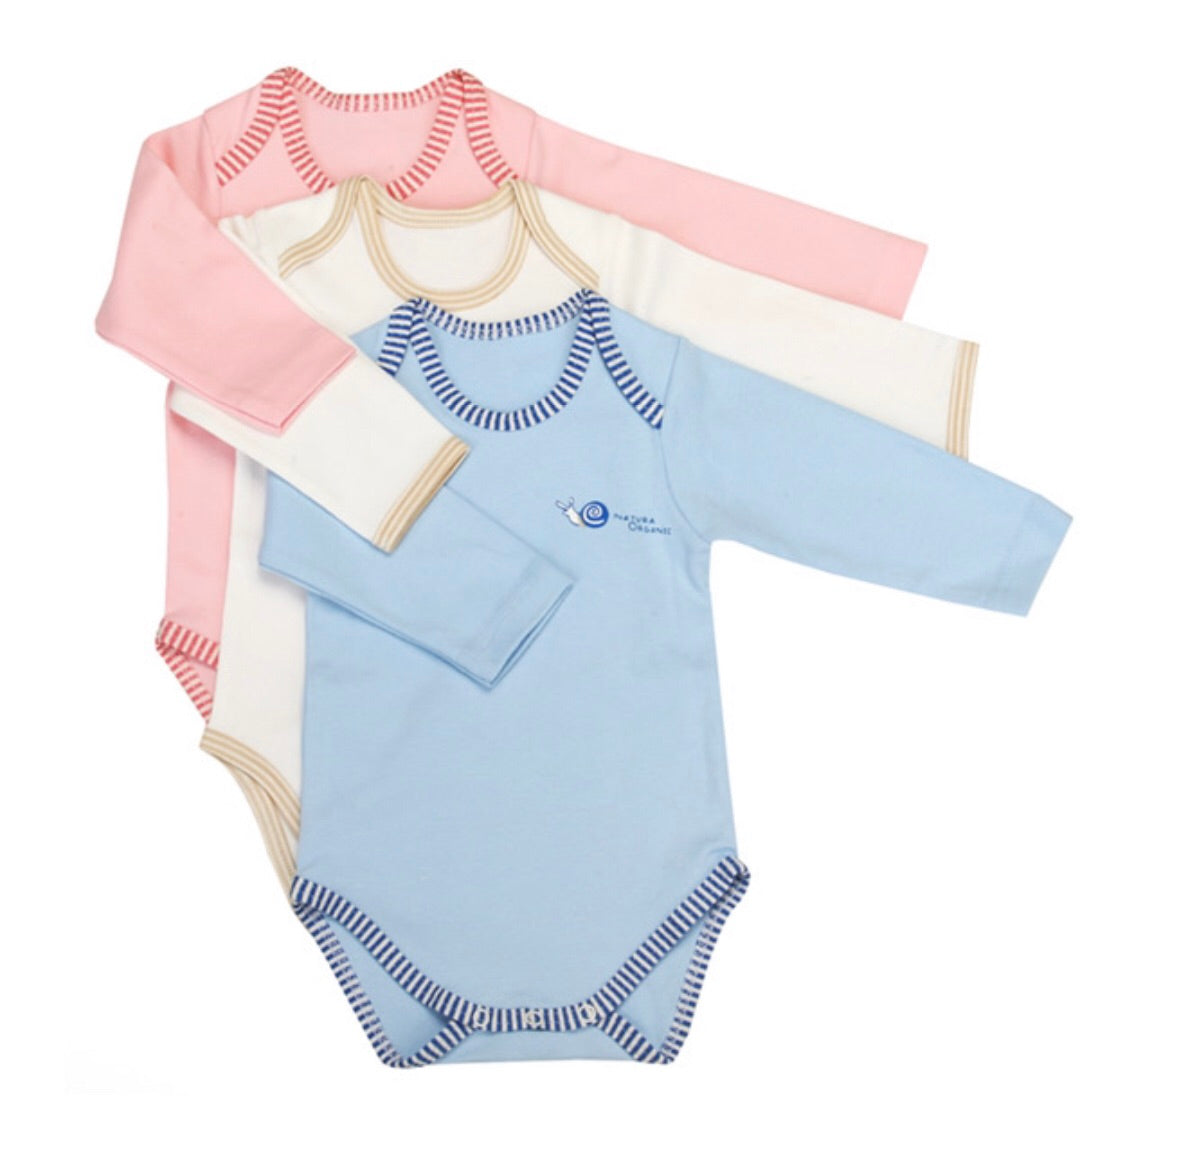 Organic Bodysuits in Ivory, Blue and Pink - Natura Organic